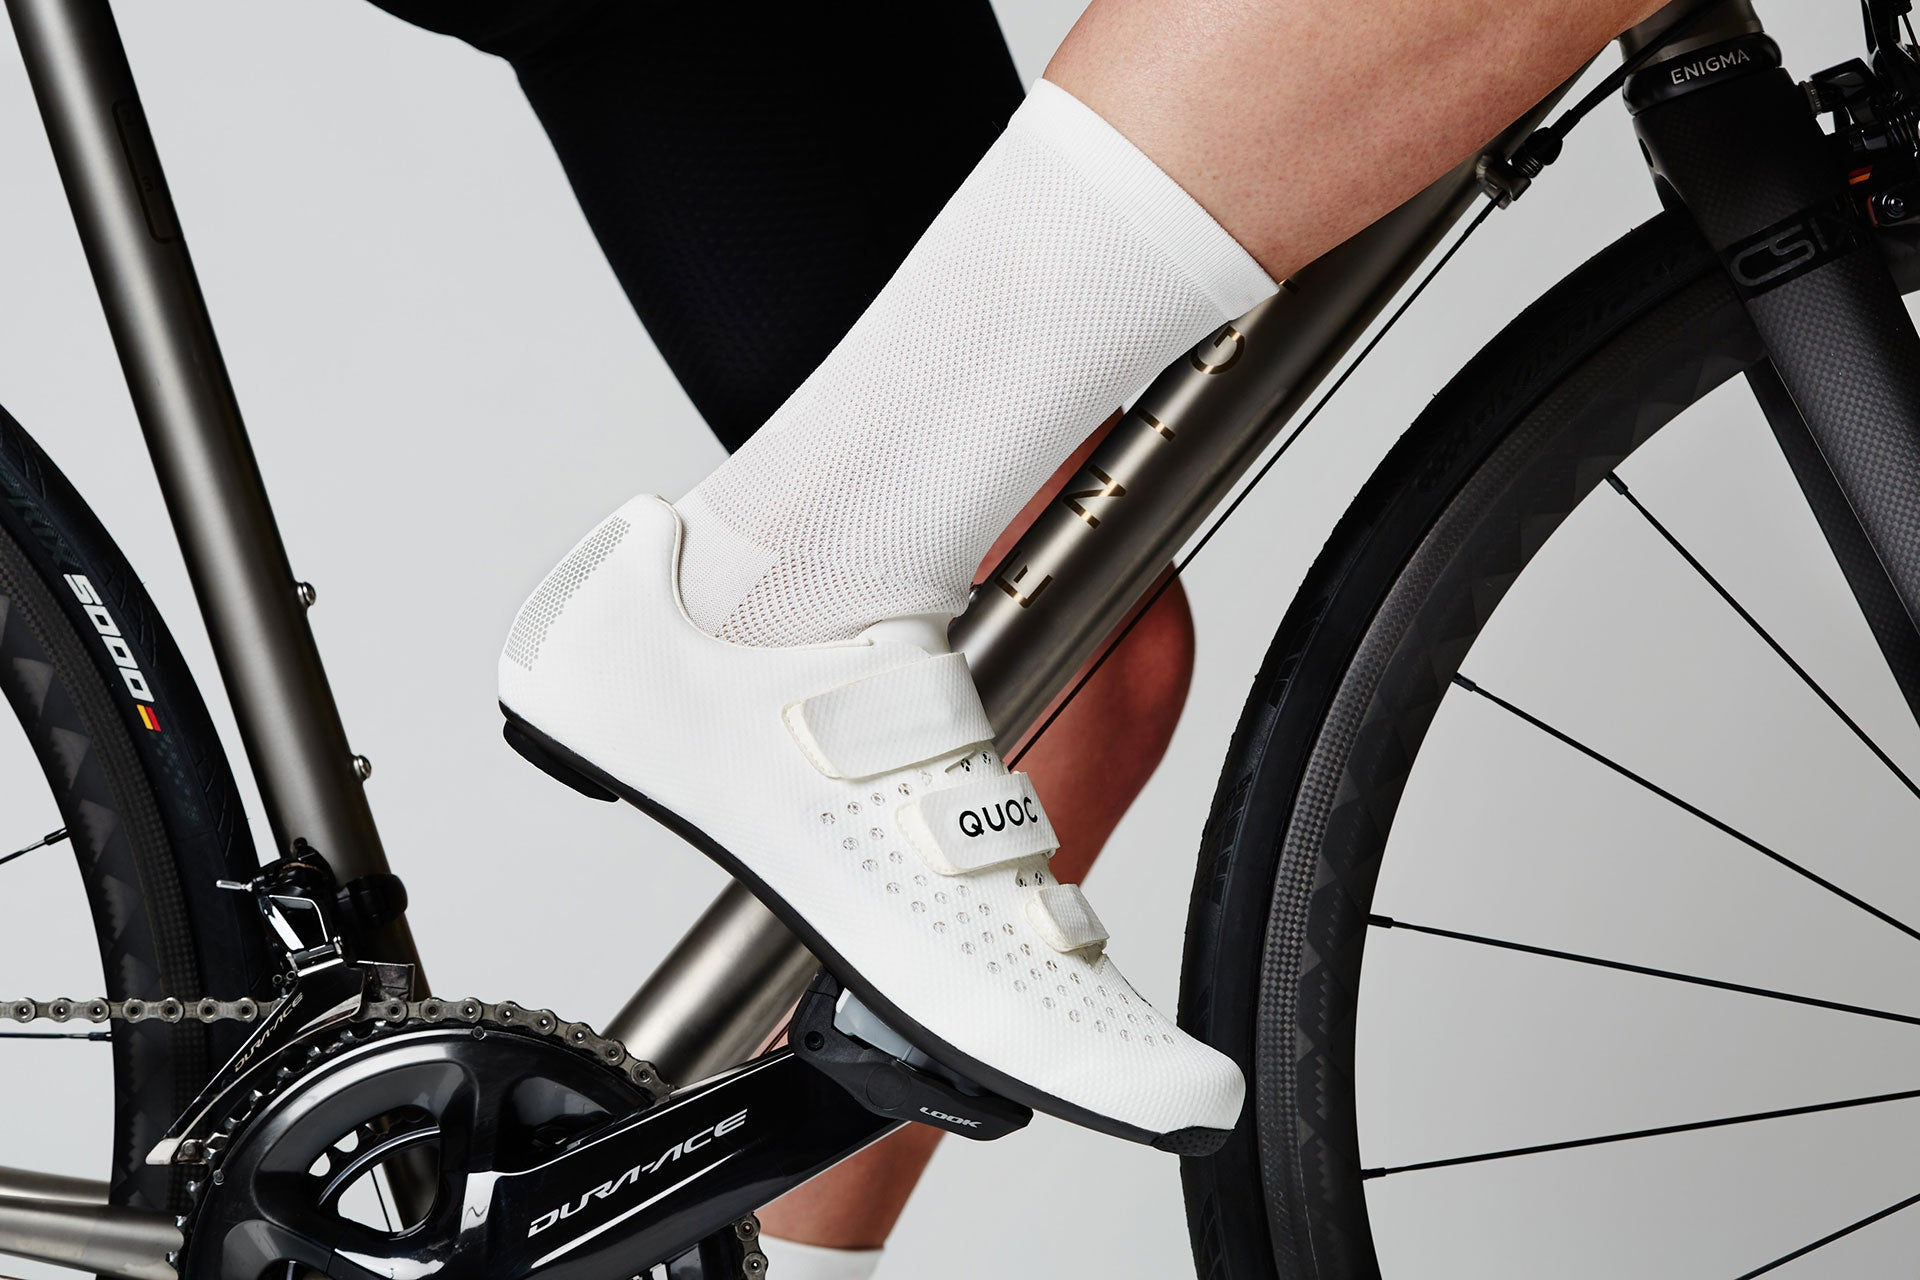 Quoc Aerofoil Road Cycling Sock